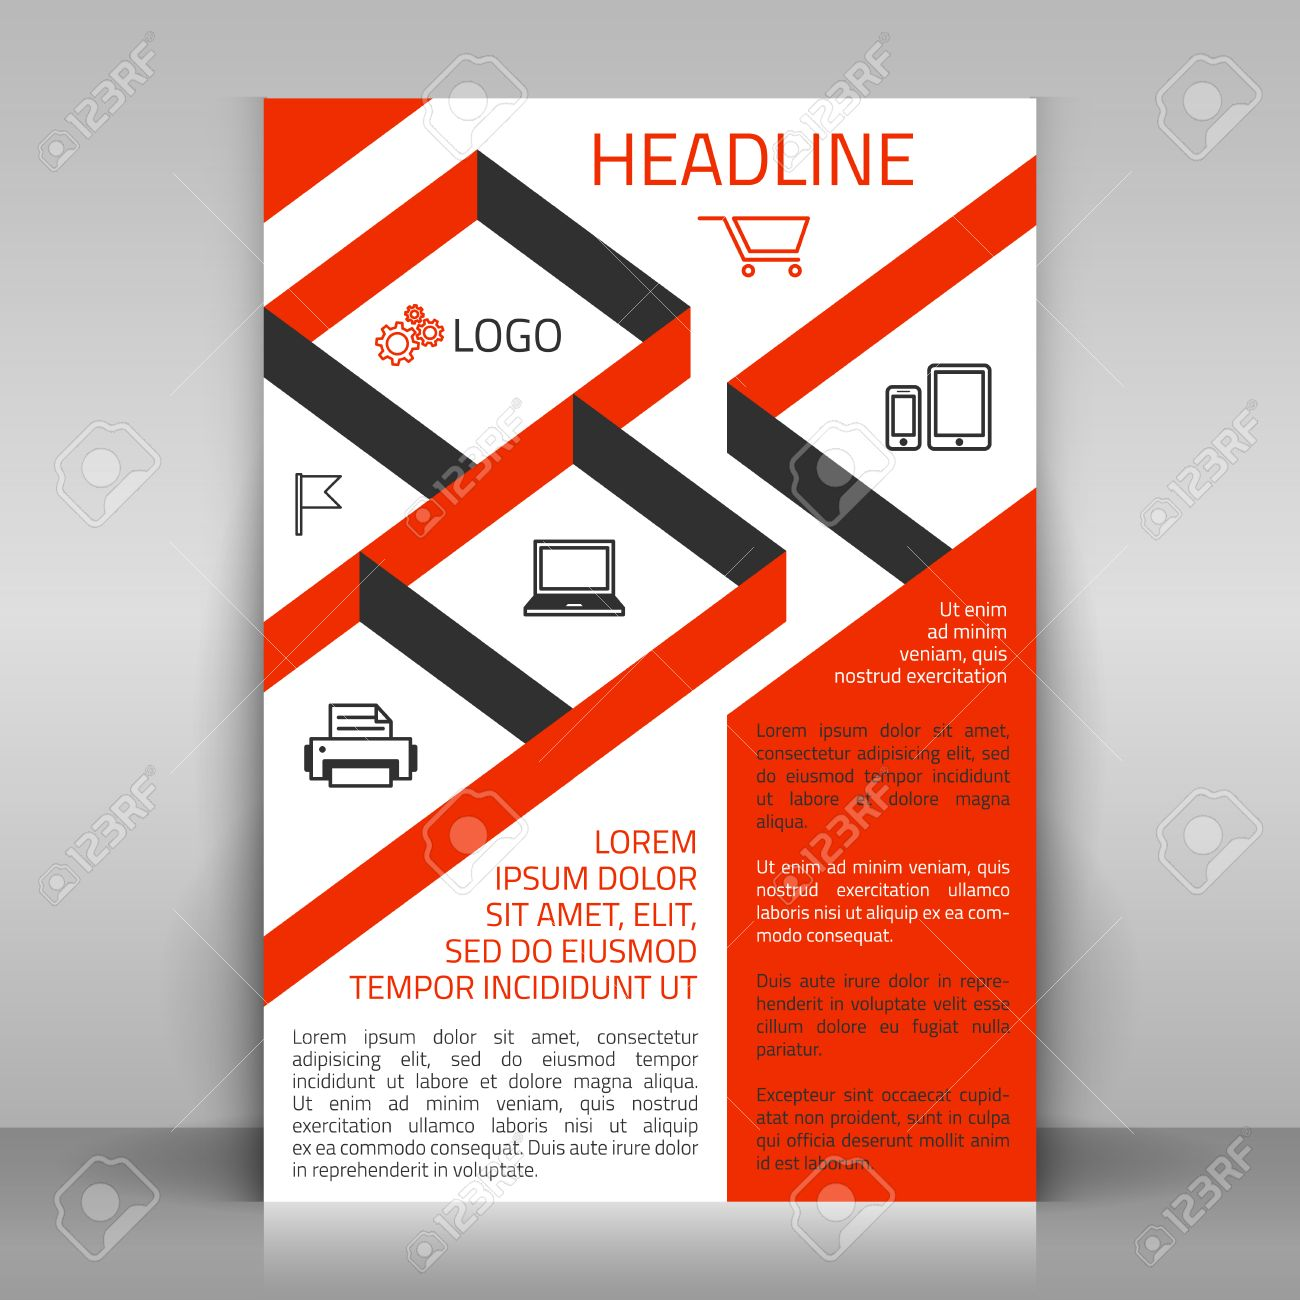 business flyer design poster template vector layout with orange